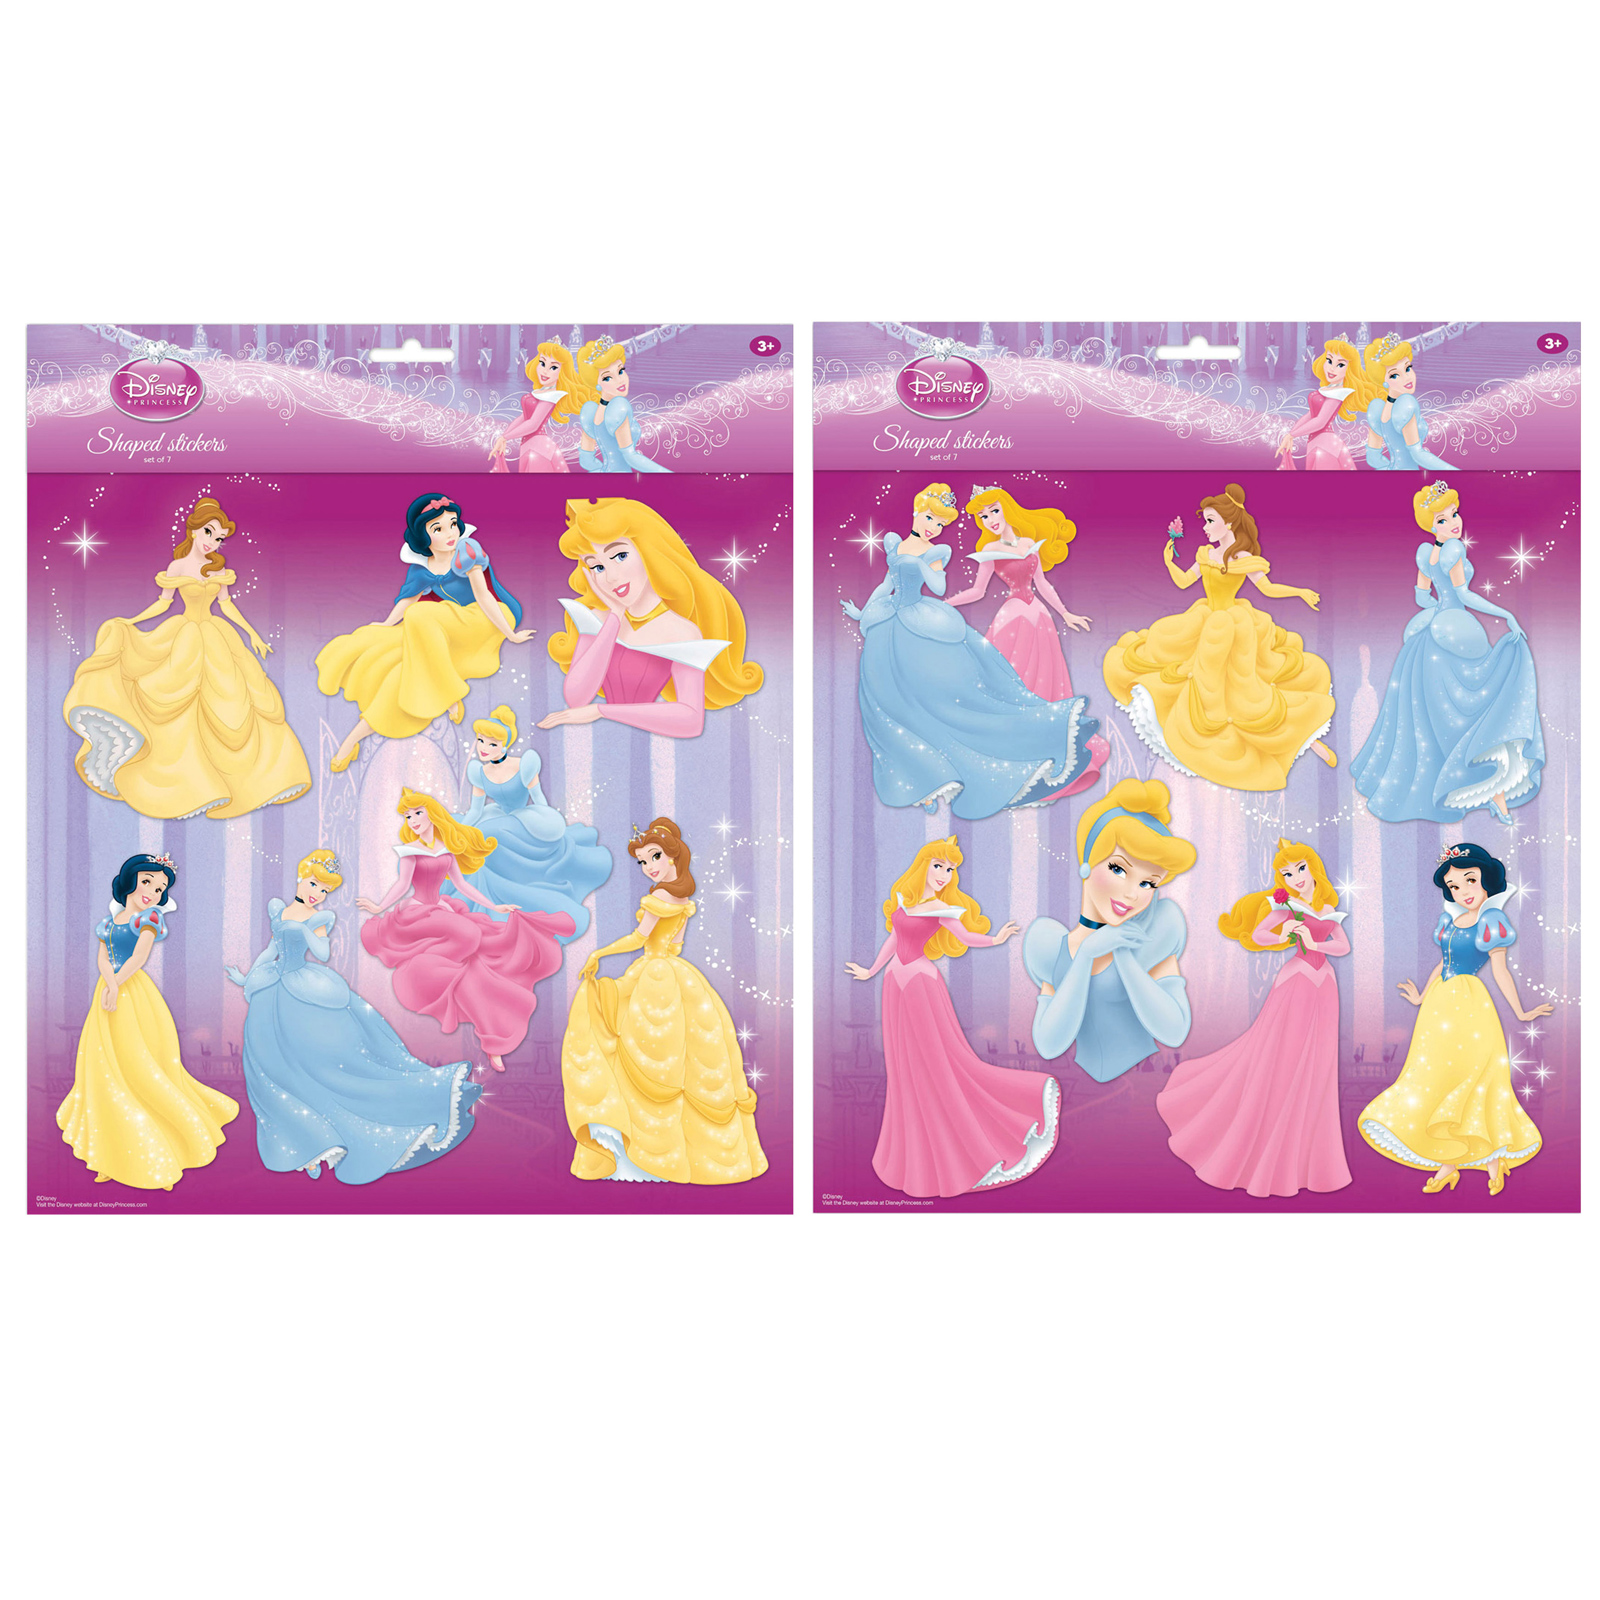 Disney princess wall stickers girls art bedroom for Disney princess wall mural stickers